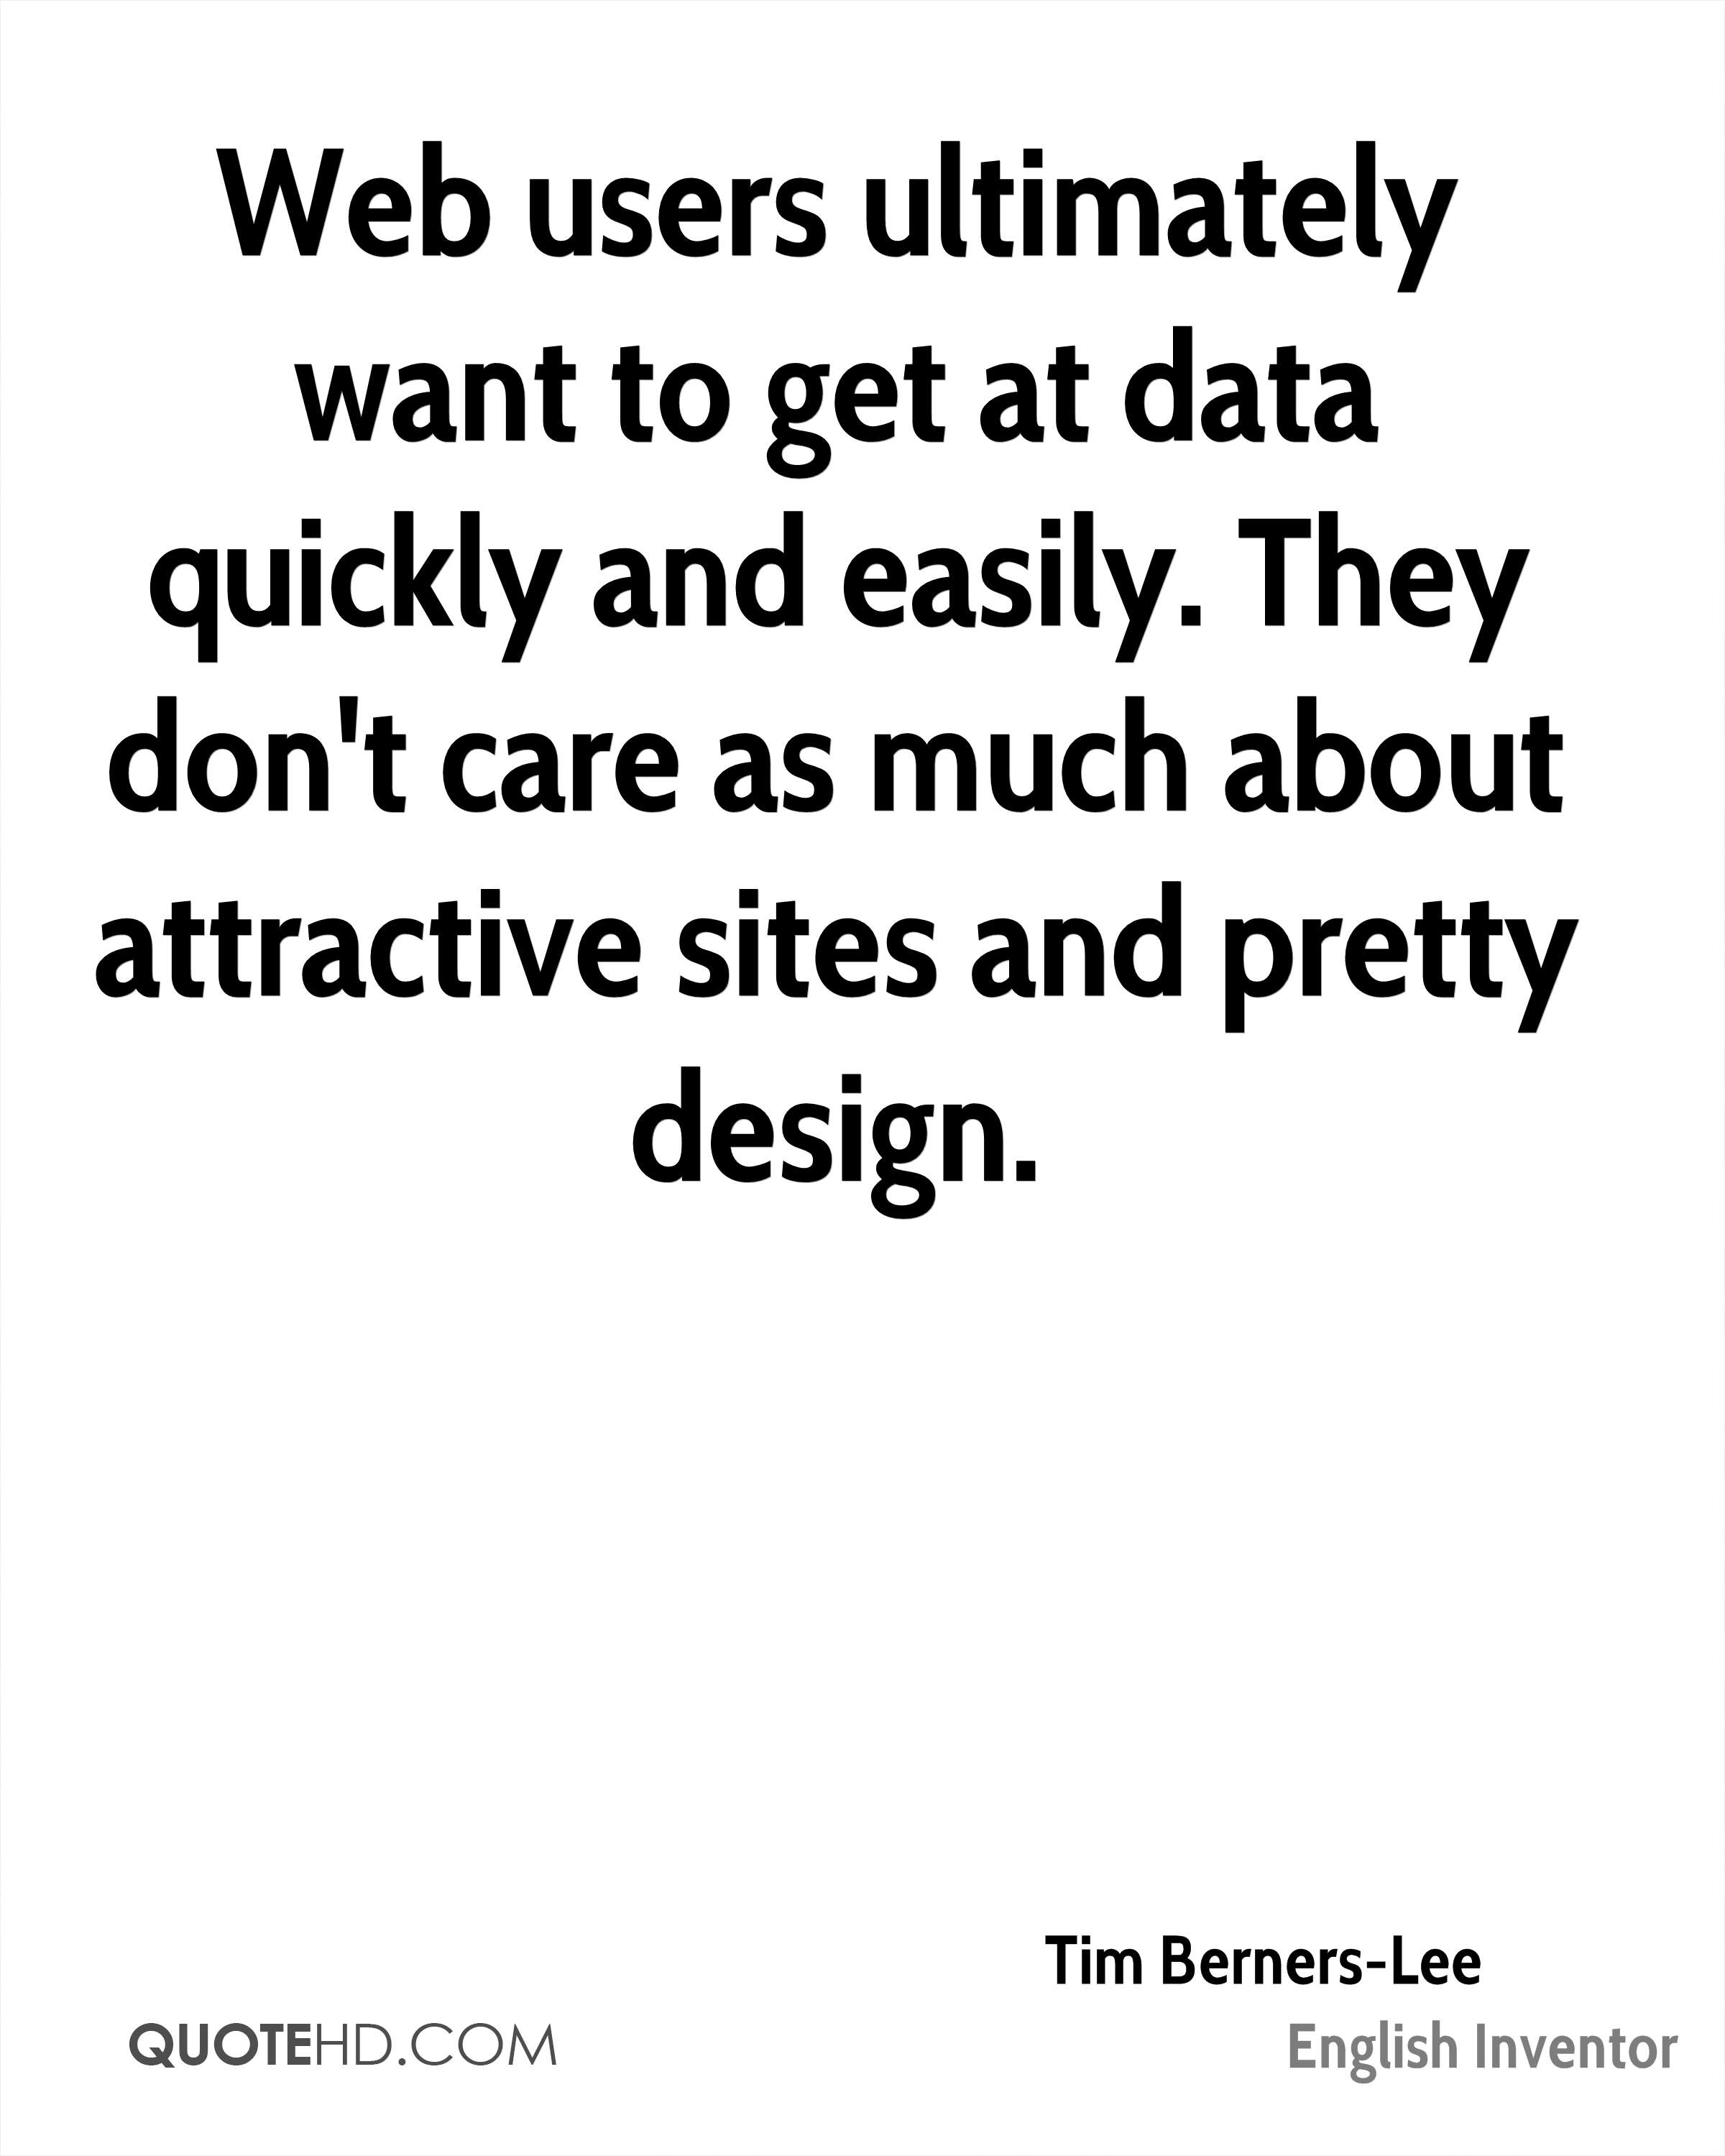 Web users ultimately want to get at data quickly and easily. They don't care as much about attractive sites and pretty design.